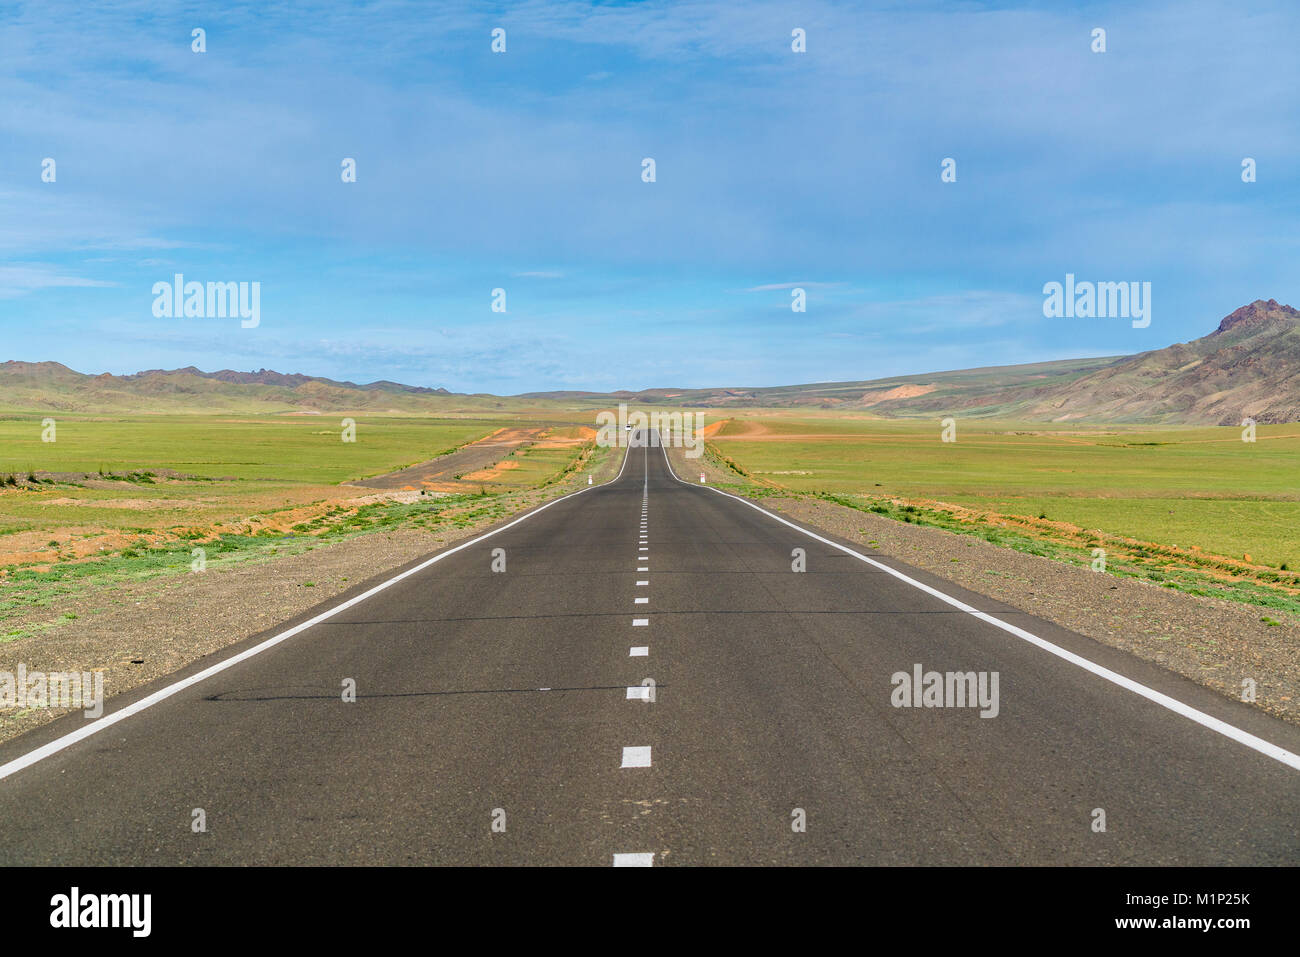 Straight paved road, Bayandalai district, South Gobi province, Mongolia, Central Asia, Asia - Stock Image